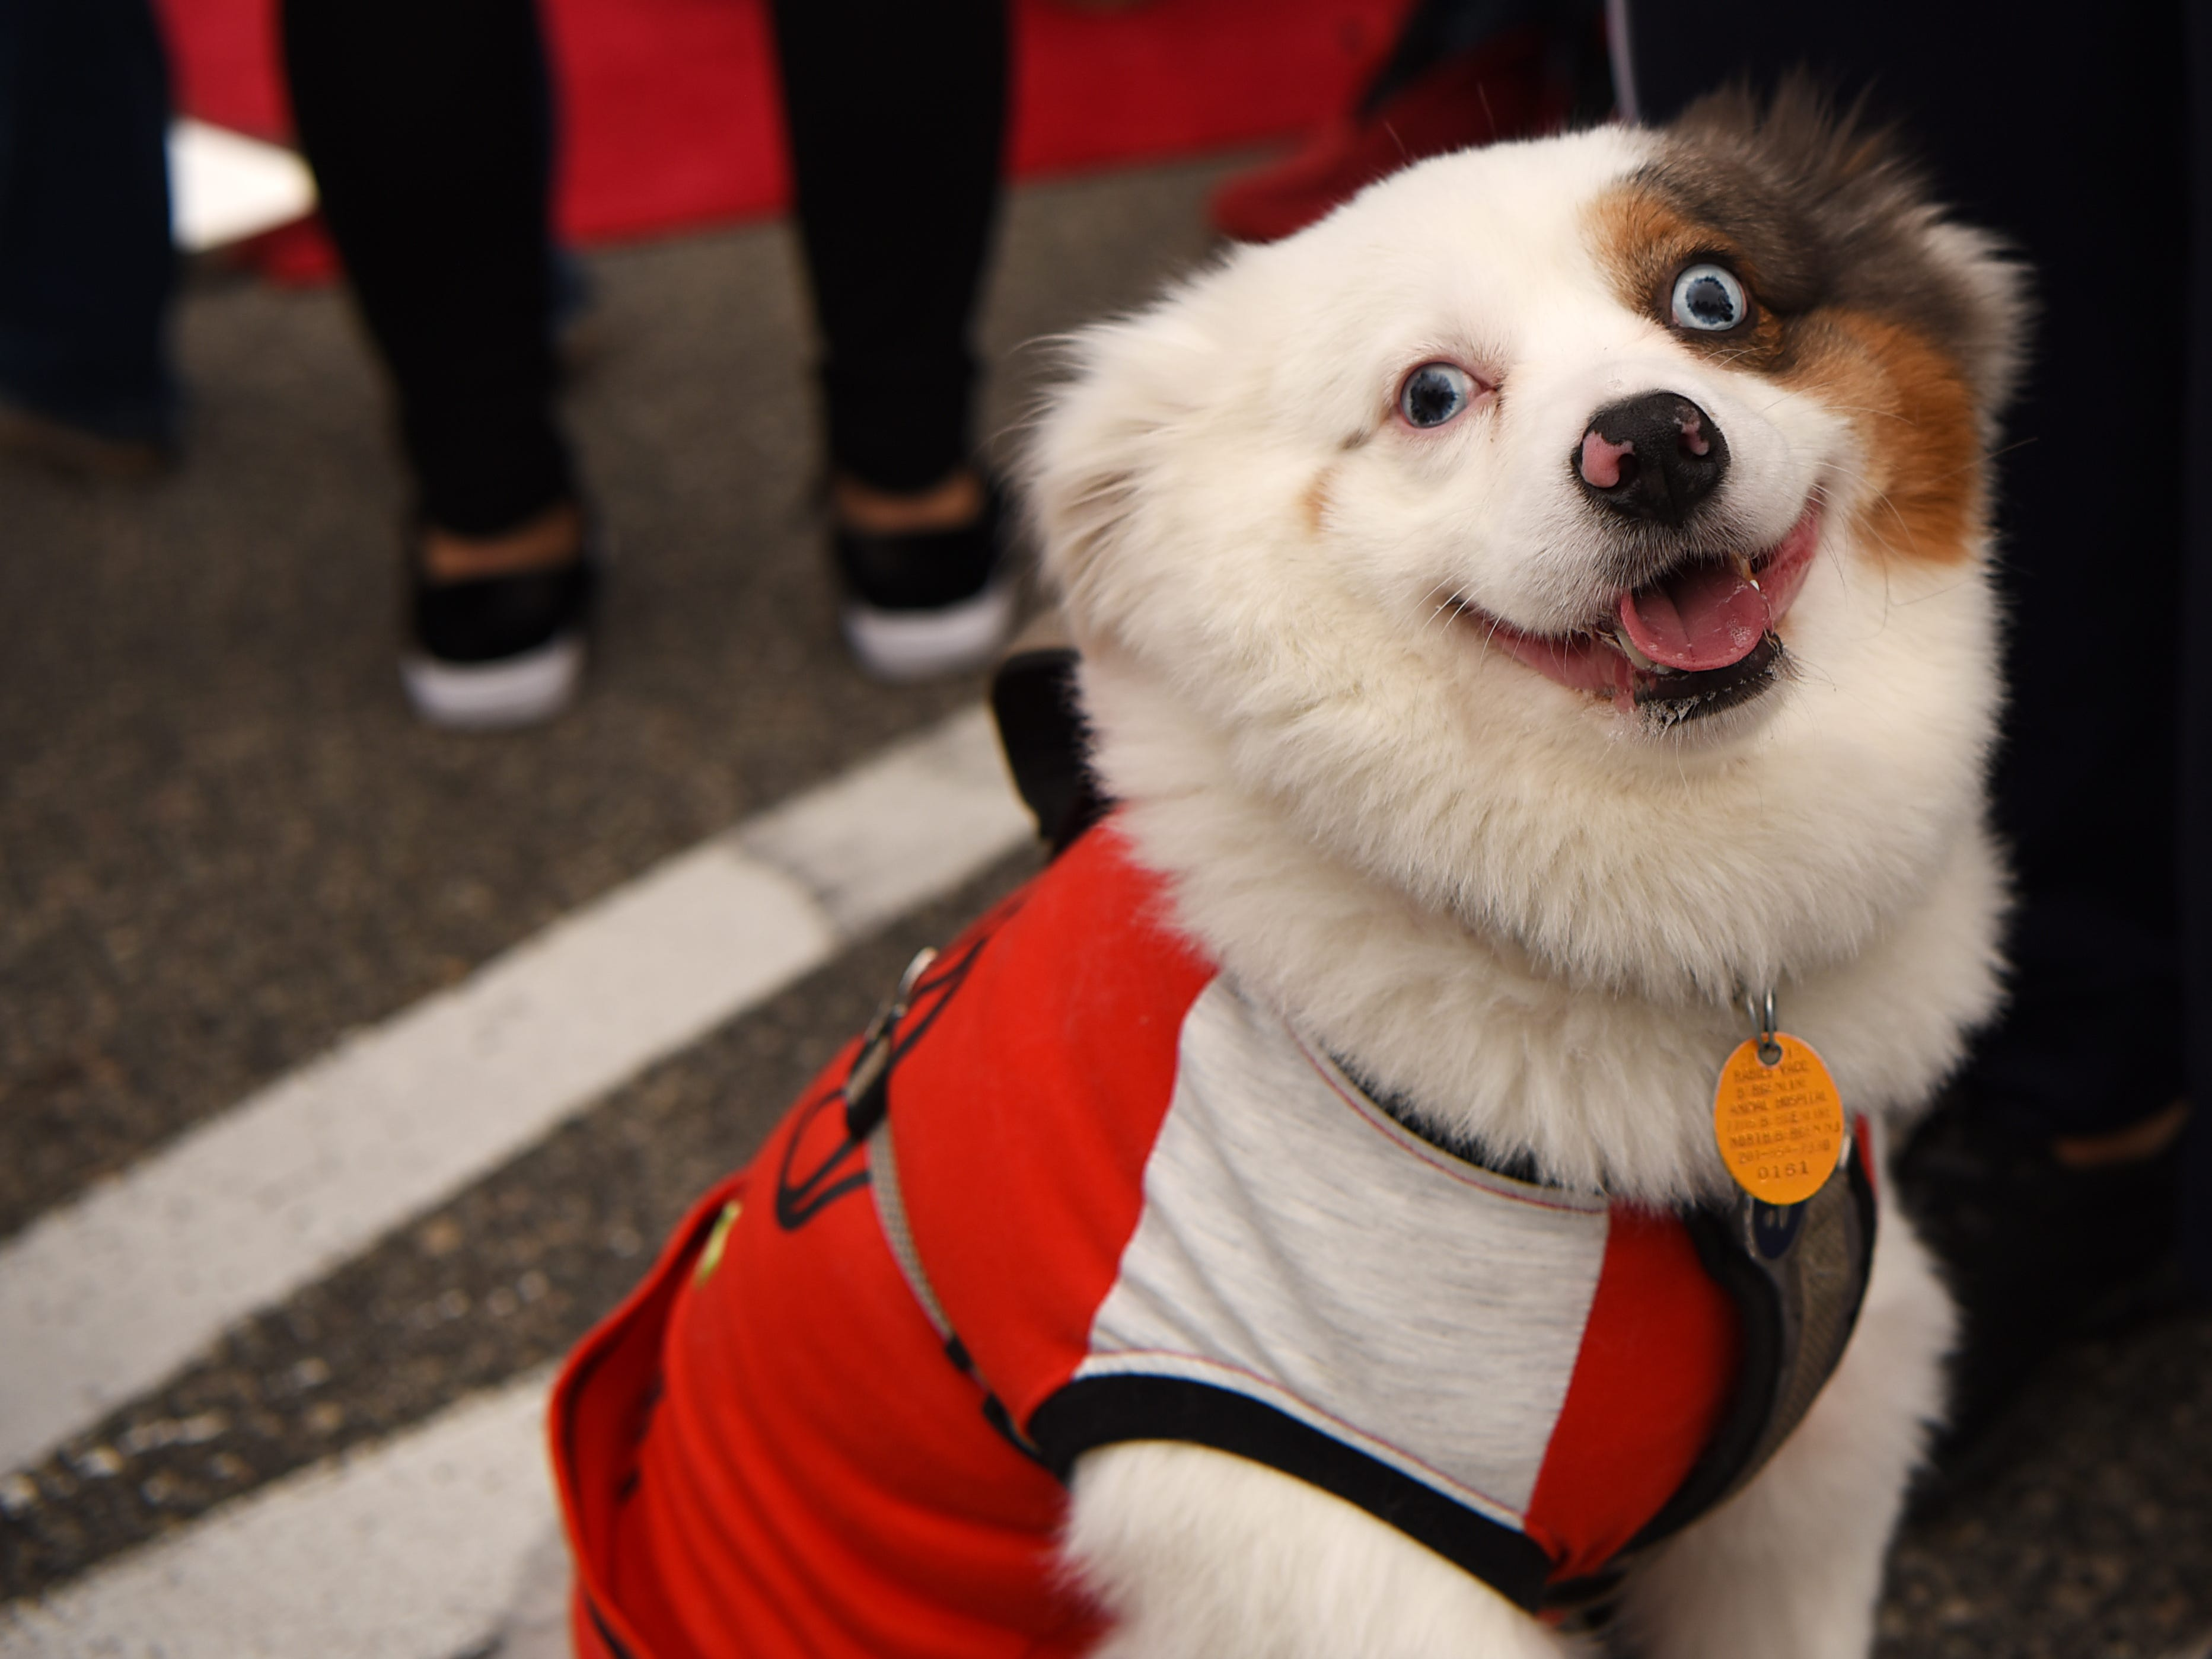 Coqueto, a one year old from West New York, smiles for the camera during Woofstock 2018, a benefit for Bergen County animal rescue organizations, at City Place in Edgewater on Saturday September 8, 2018.